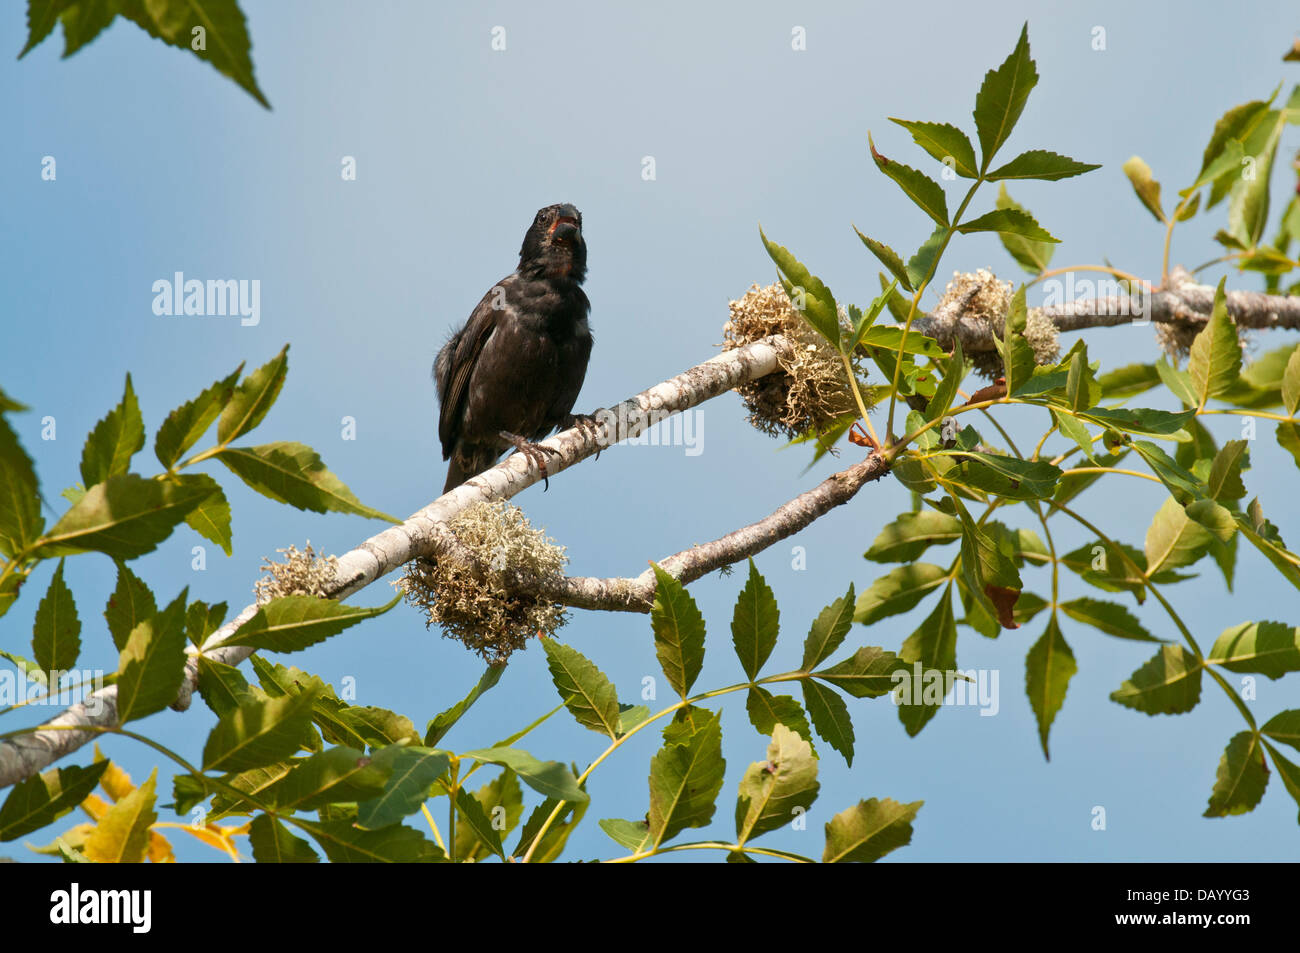 Stock photo of a cactus finch siting in a tree on Santa Cruz Island, Galapagos. - Stock Image